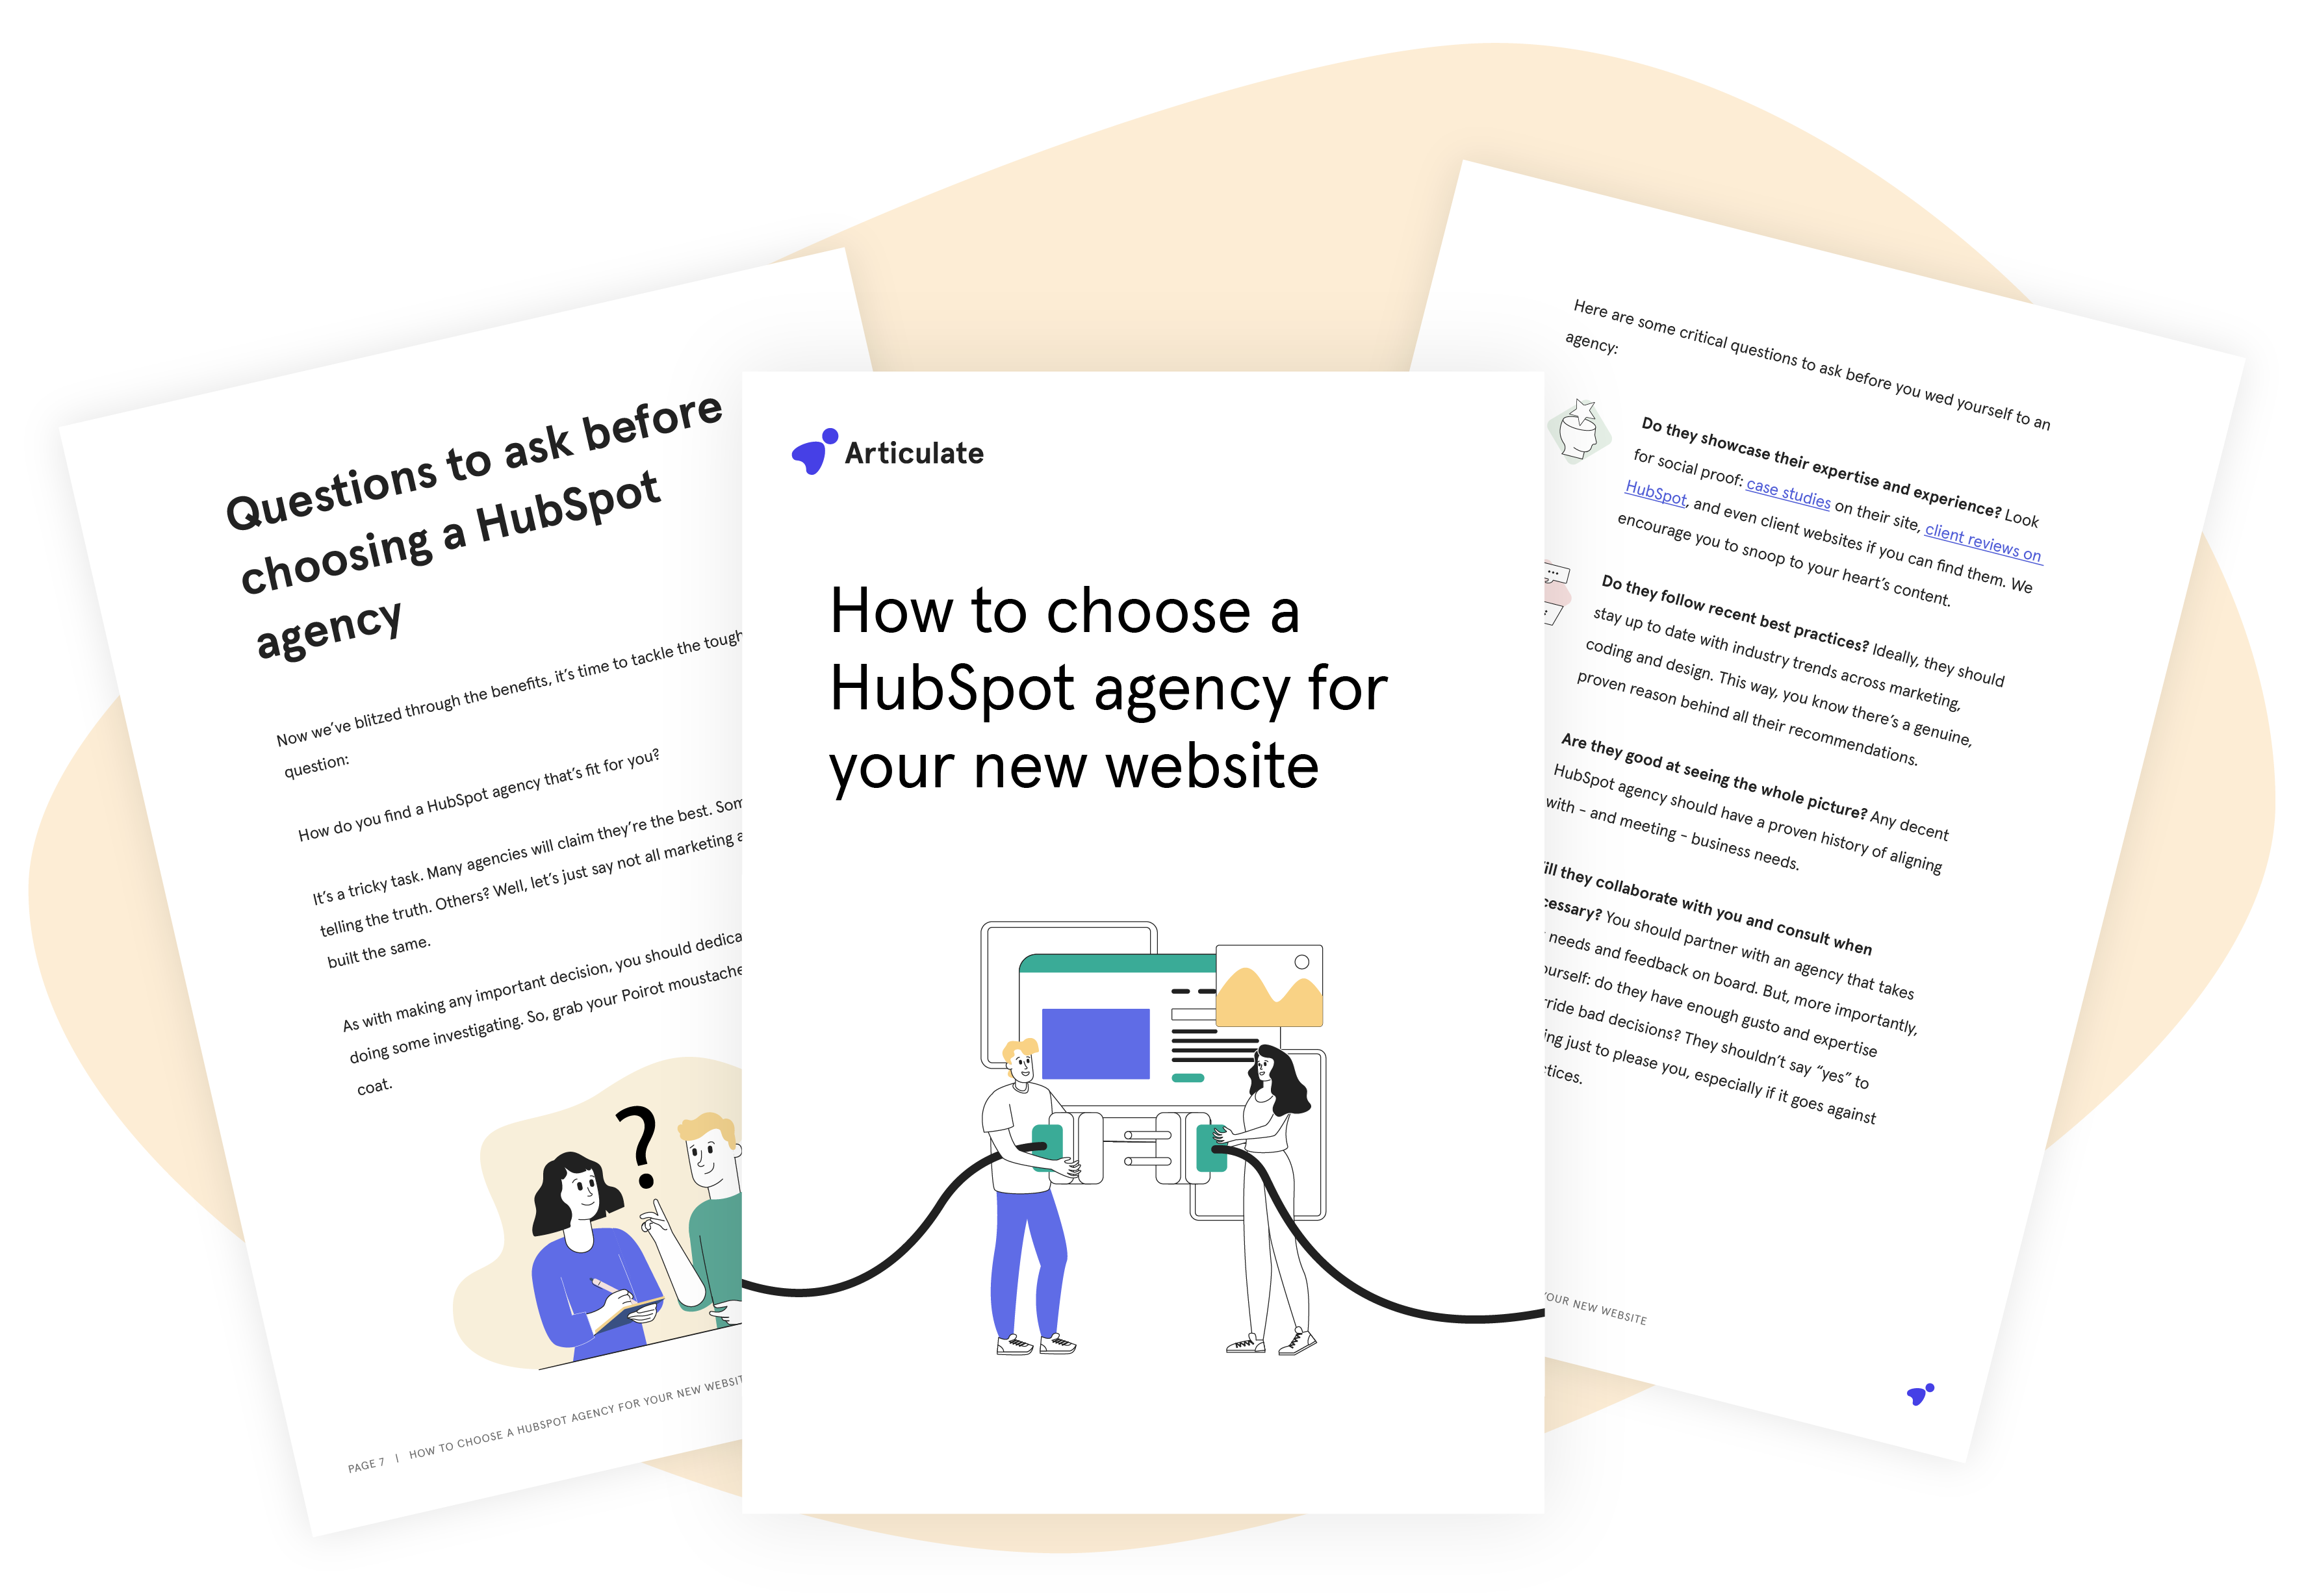 Articulate_How to choose a HubSpot agency for your new website_Large Mockup